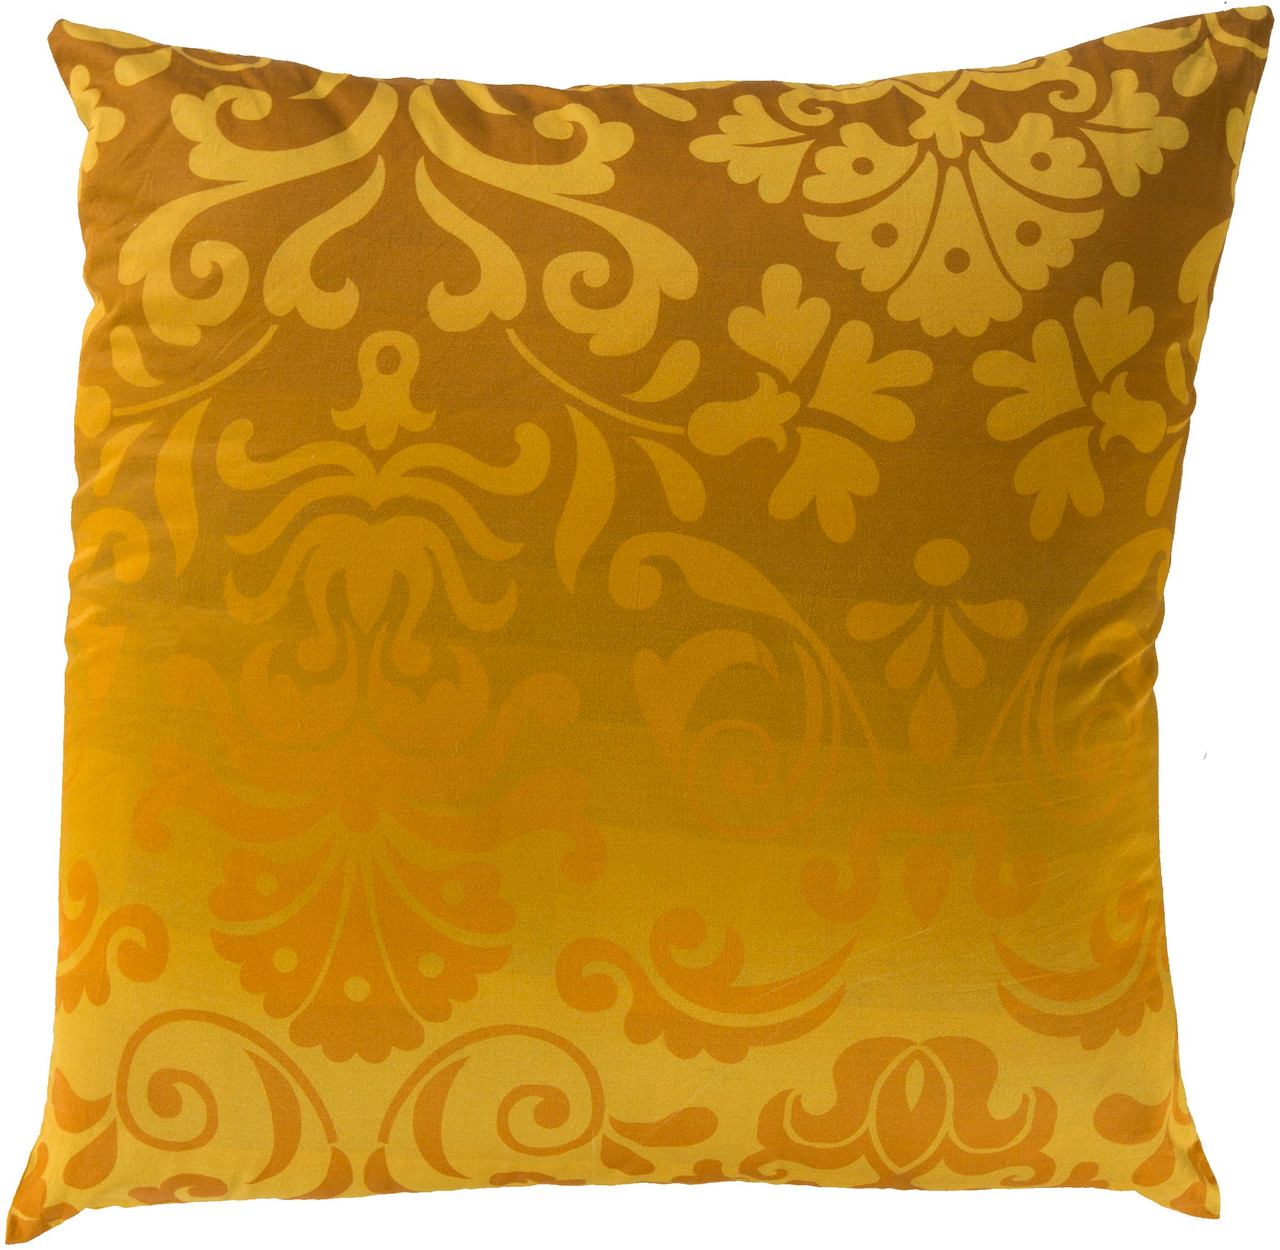 Honey Gold Throw Pillow : 18